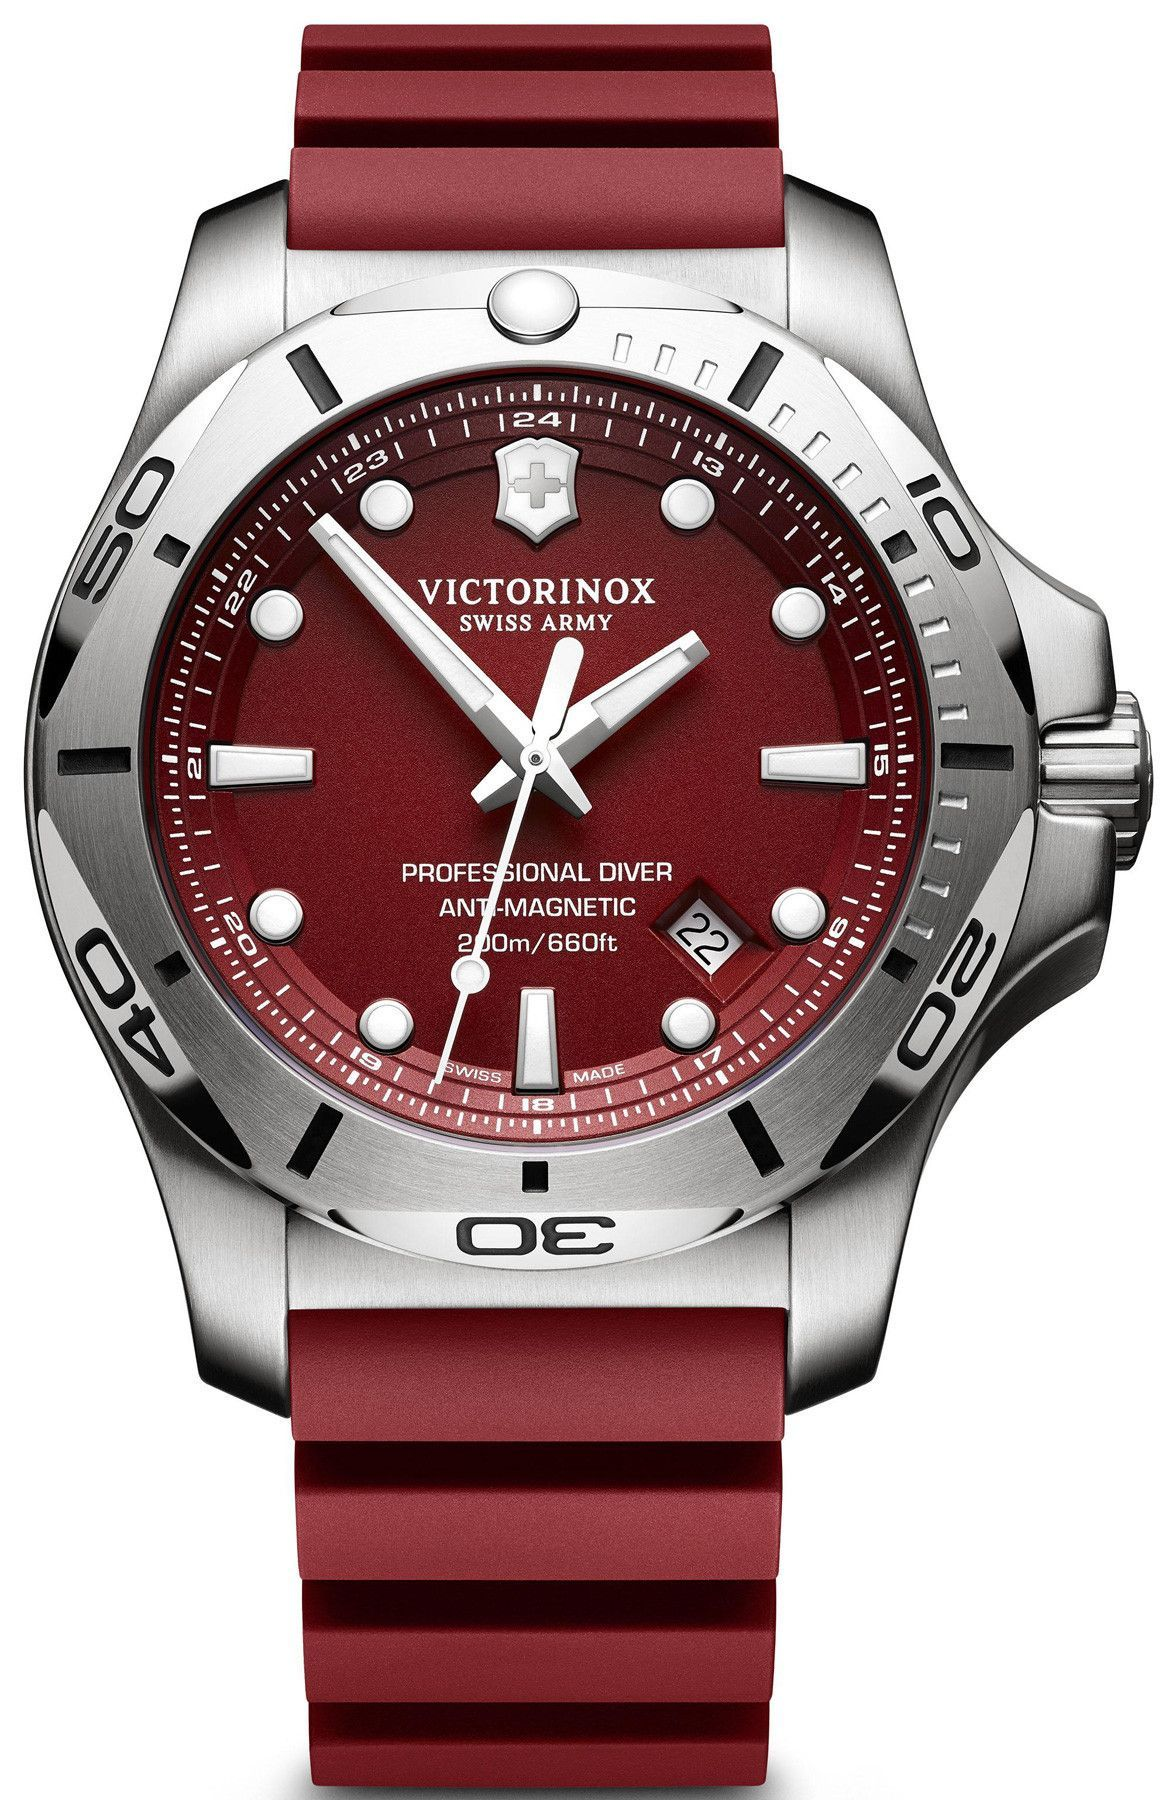 more my always impressed diver certina affordable ds product is chronograph brand for than watches that action ablogtowatch current memory iso style and with a in eminently classic its escapes has